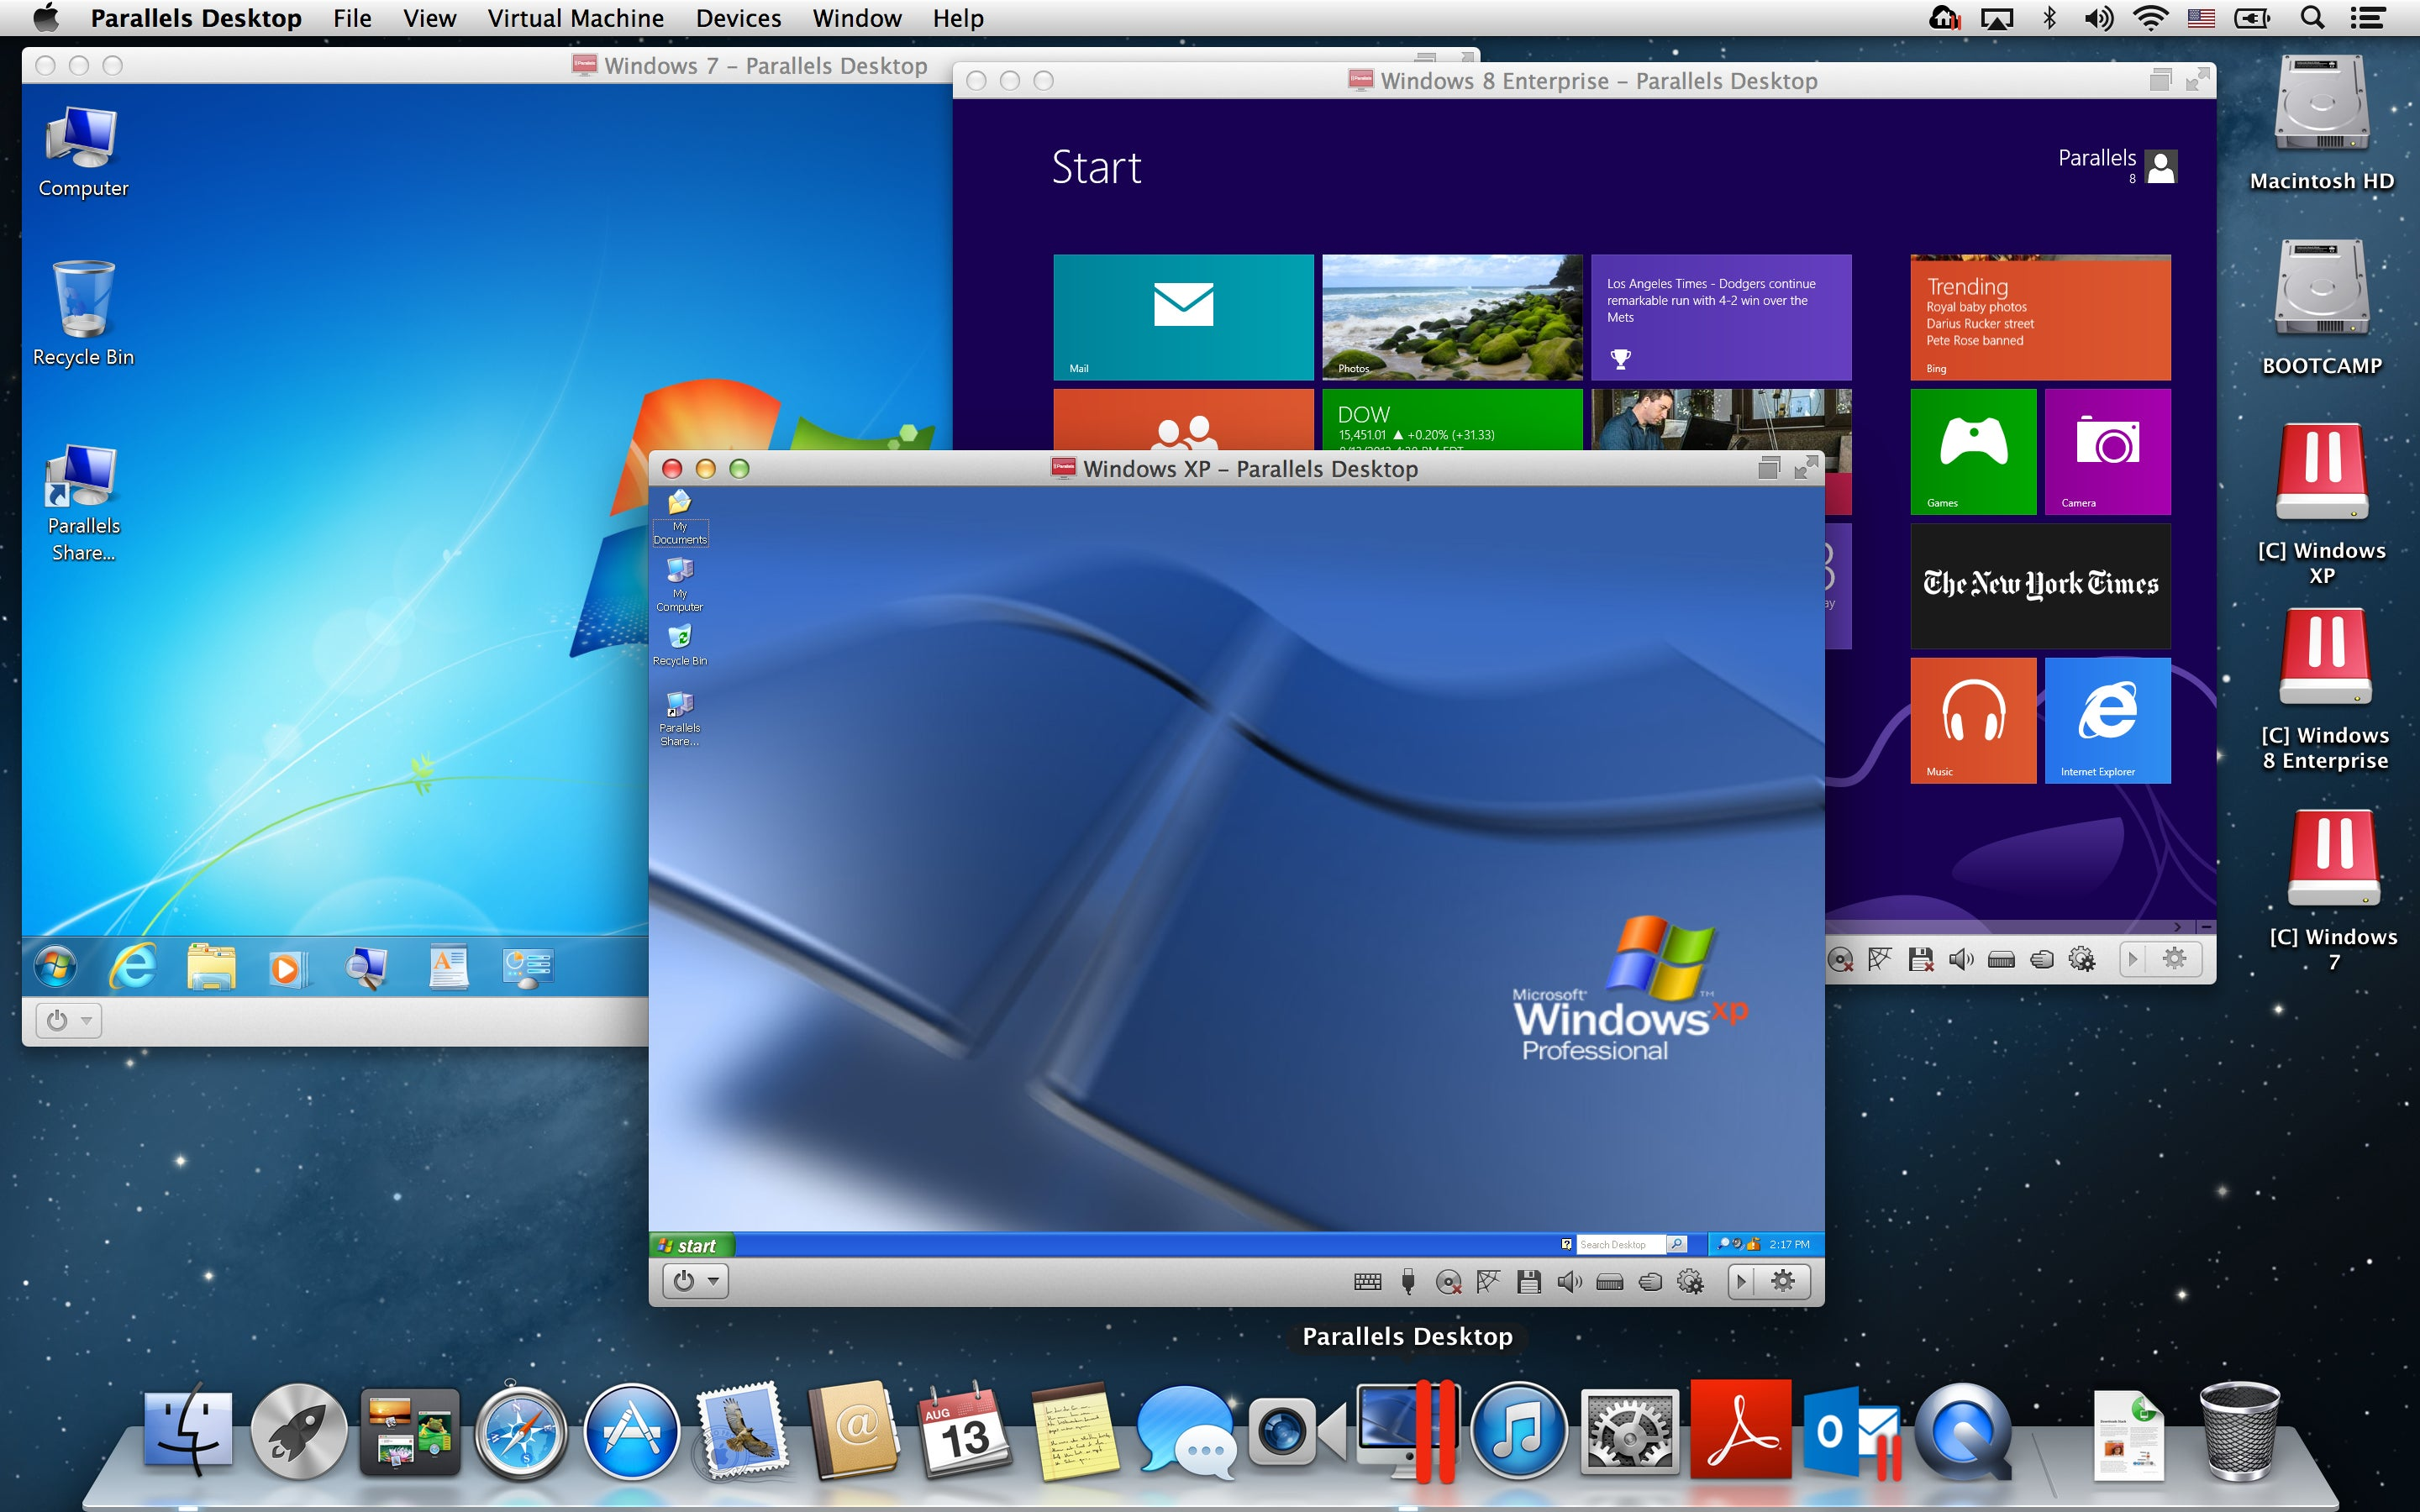 Does parallels 8 support windows xp alternative to windows update xp